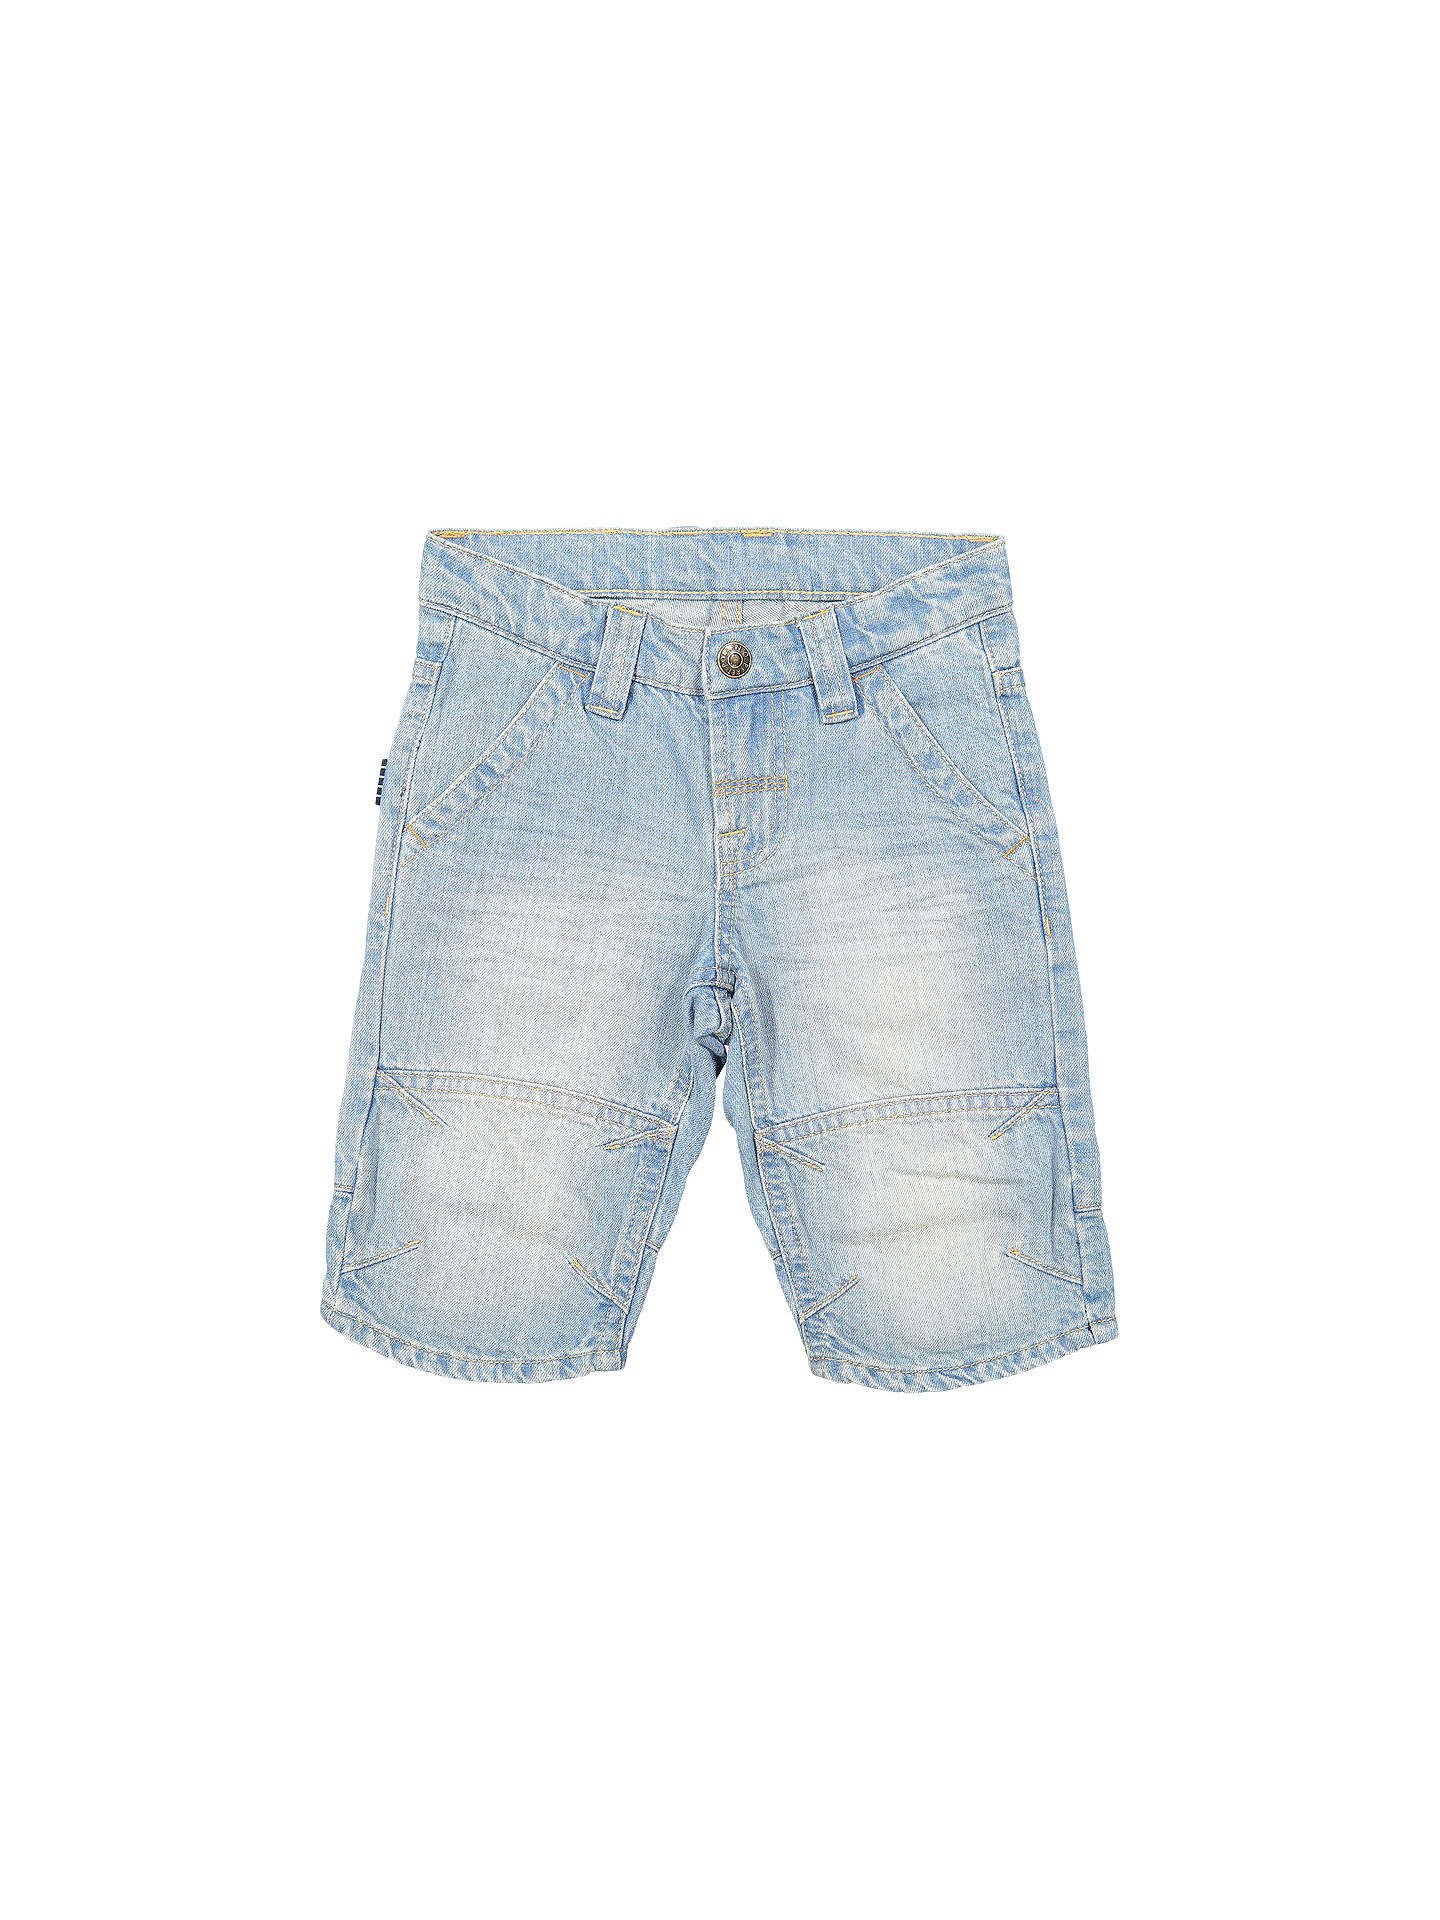 5a83bdf3db9d BuyPolarn O. Pyret Children's Denim Shorts, Blue, 2-3 years Online at ...